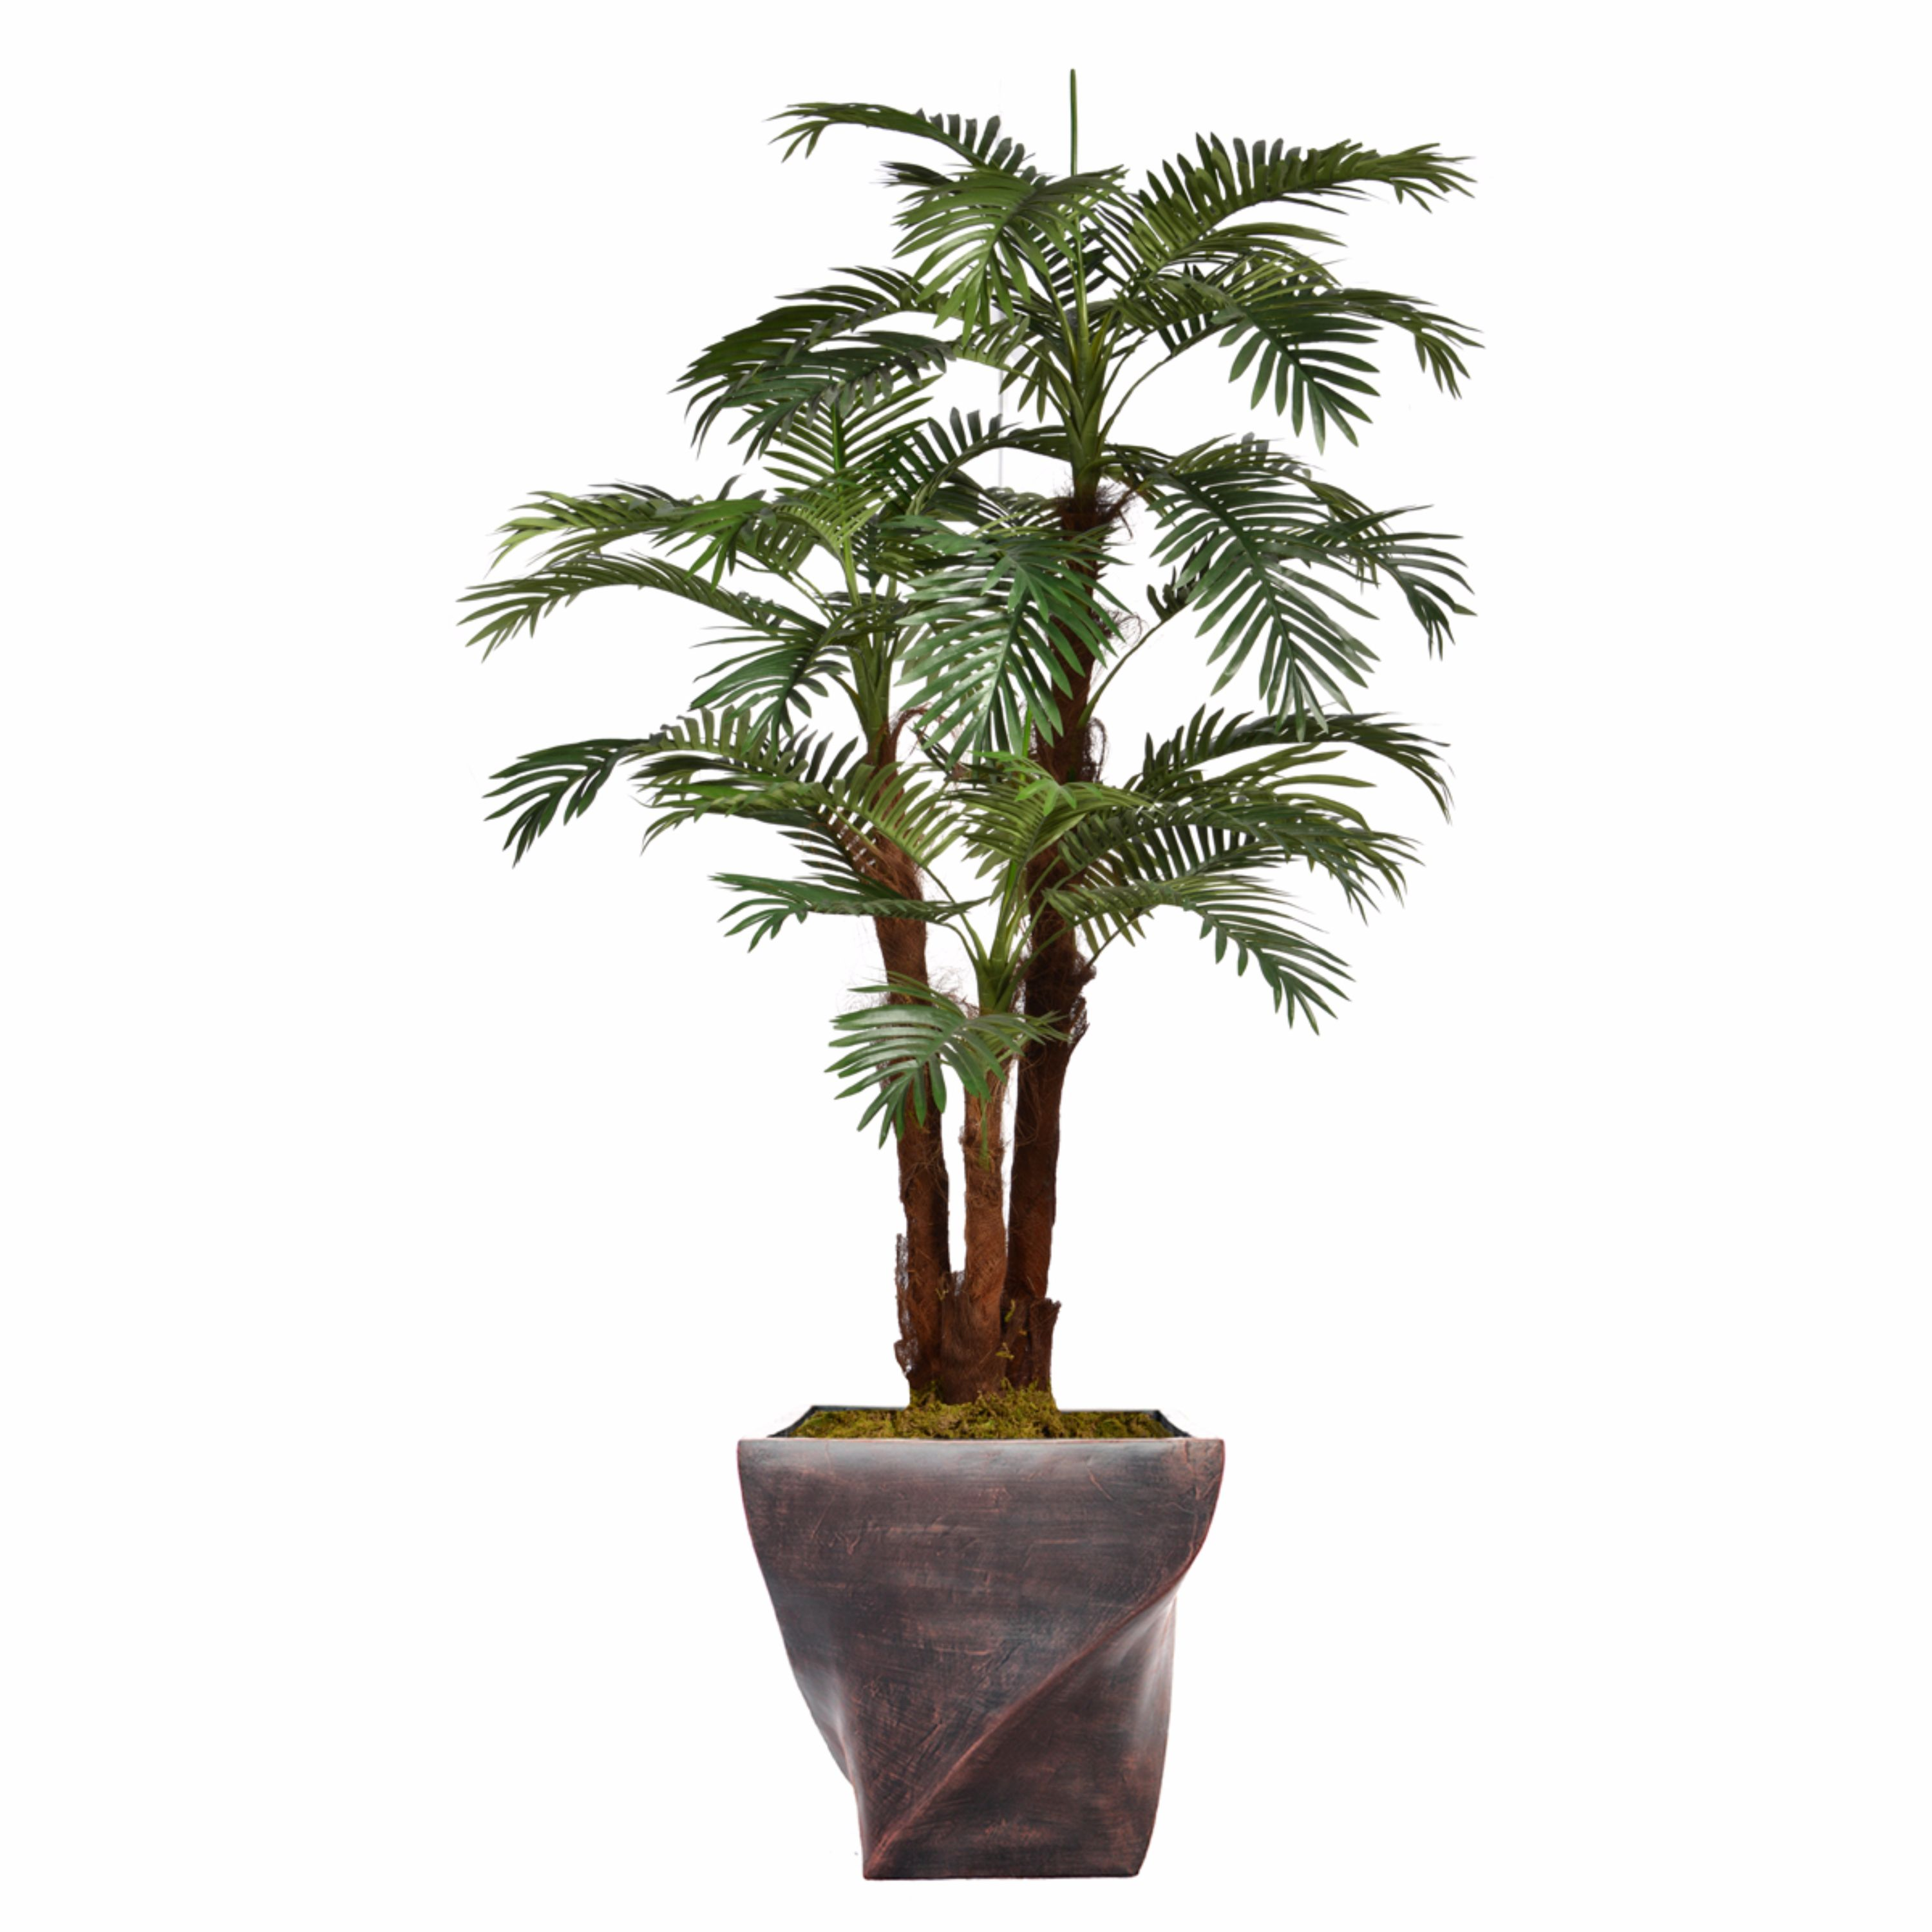 """75.5"""" Tall Palm Tree Artificial Decorative Indoor/ Outdoor Faux with Burlap Kit and Fiberstone Planter By Minx NY"""